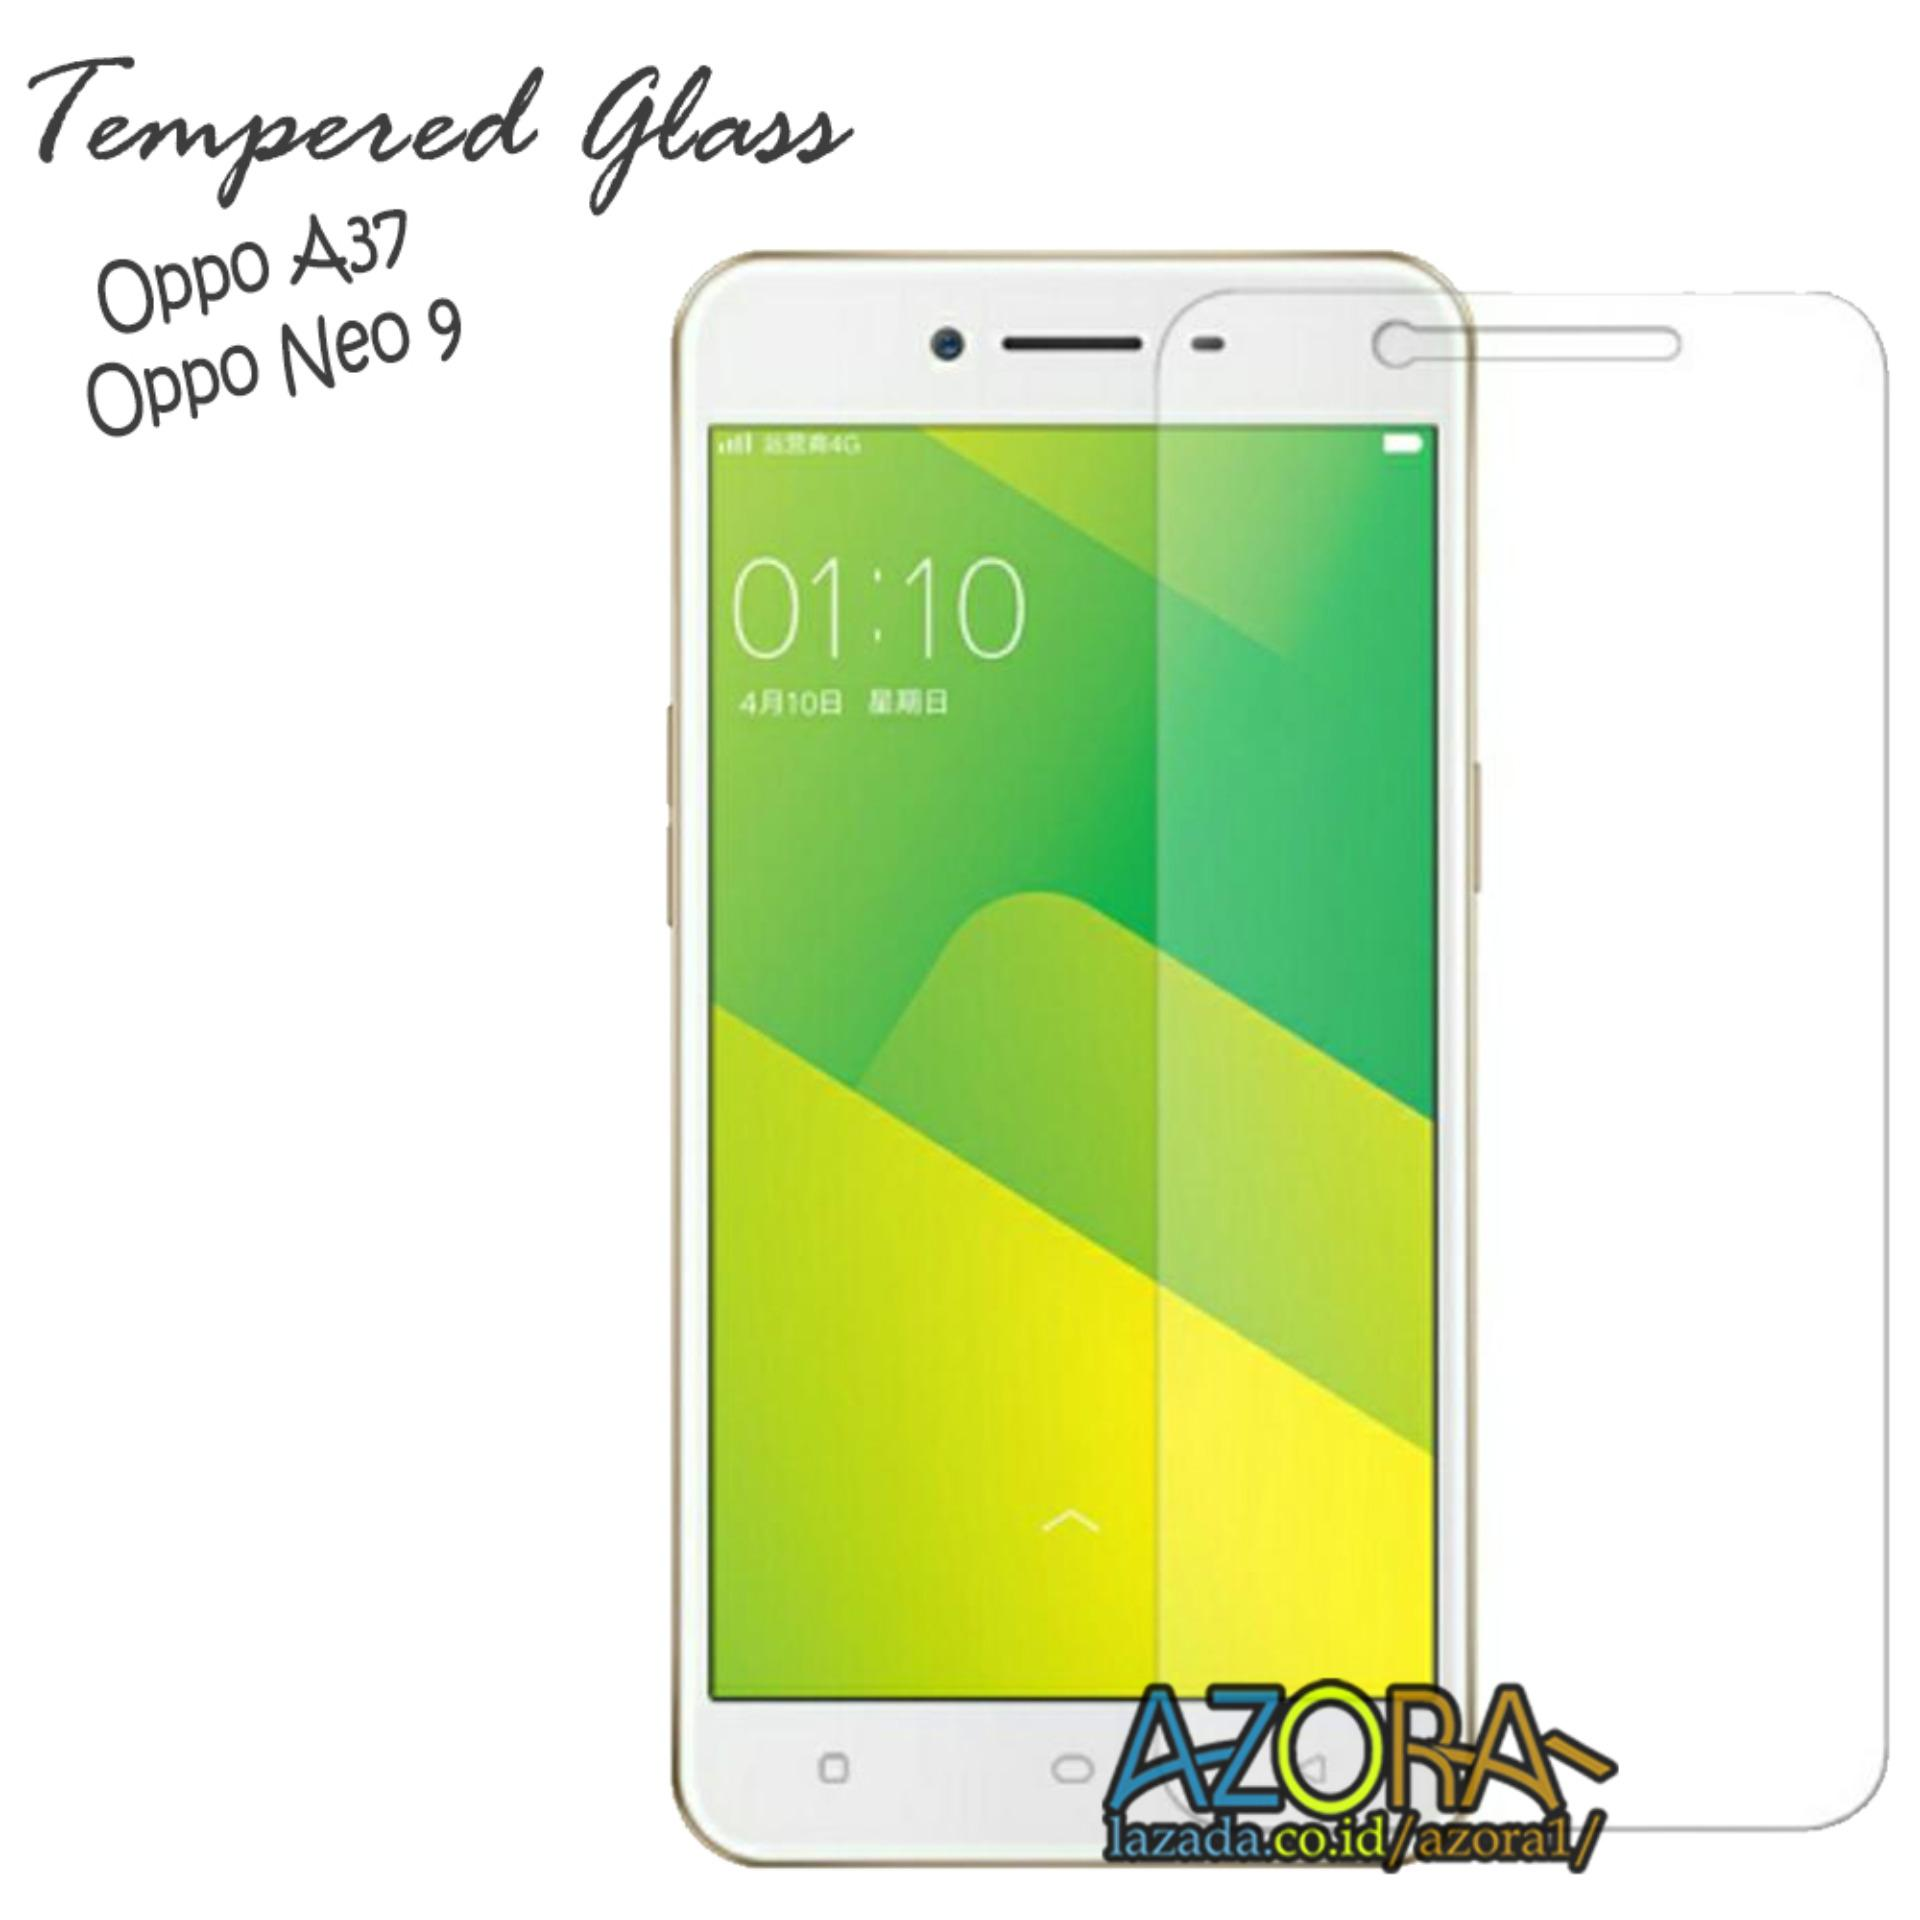 Tempered Glass Oppo Neo 9 / A37F / A37 Screen Protector Pelindung Layar Kaca Anti Gores - Bening